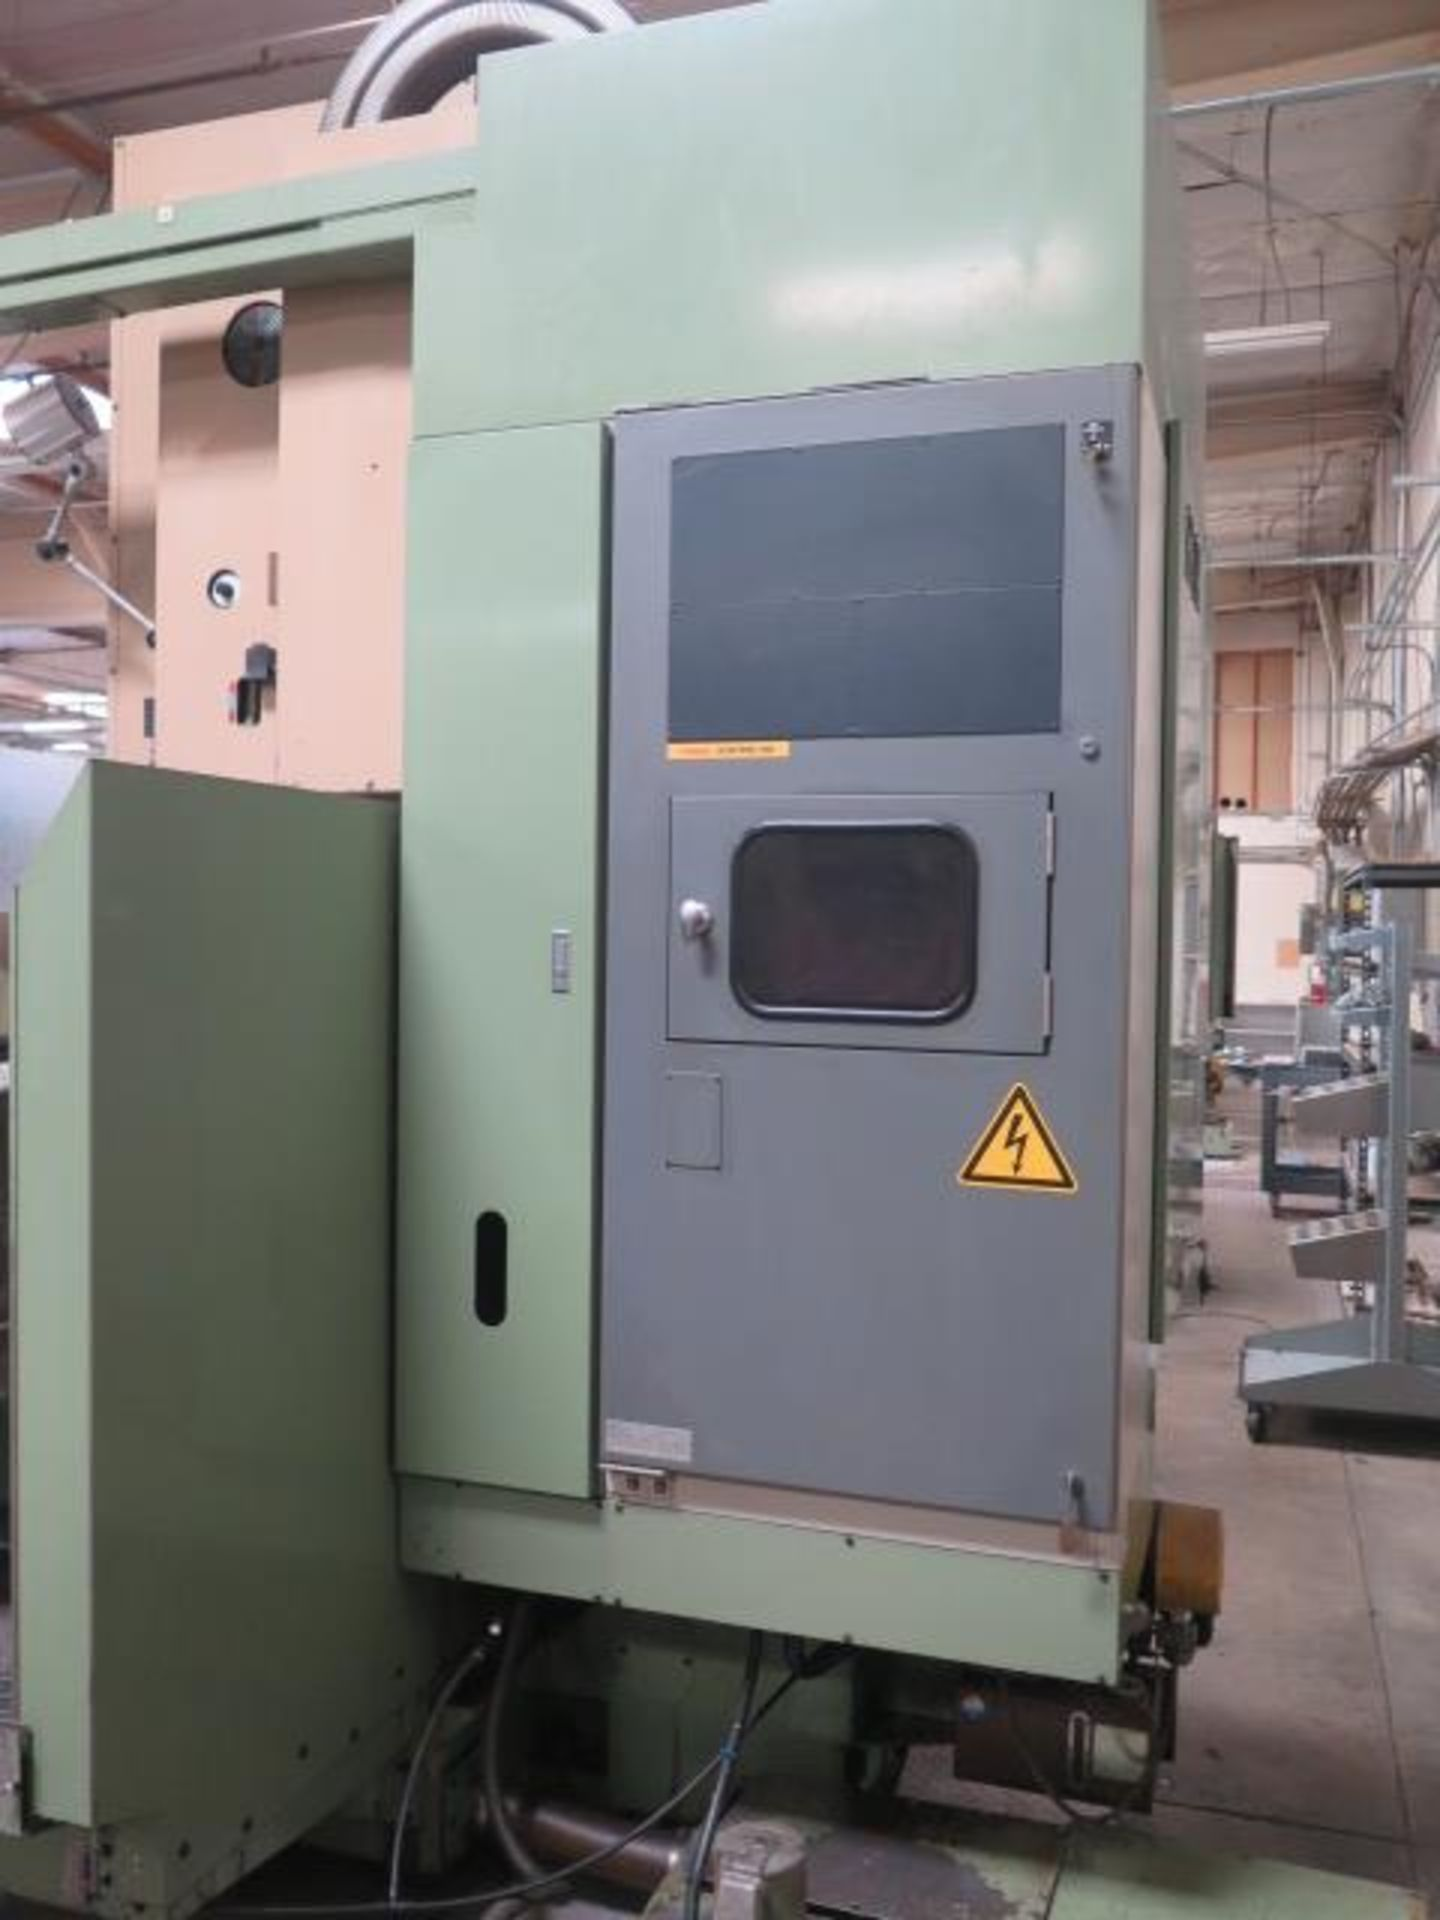 Mori Seiki MV-55 CNC Vertical Machining Center s/n 576 w/ Fanuc System 11M Controls, 24-Station ATC, - Image 10 of 13